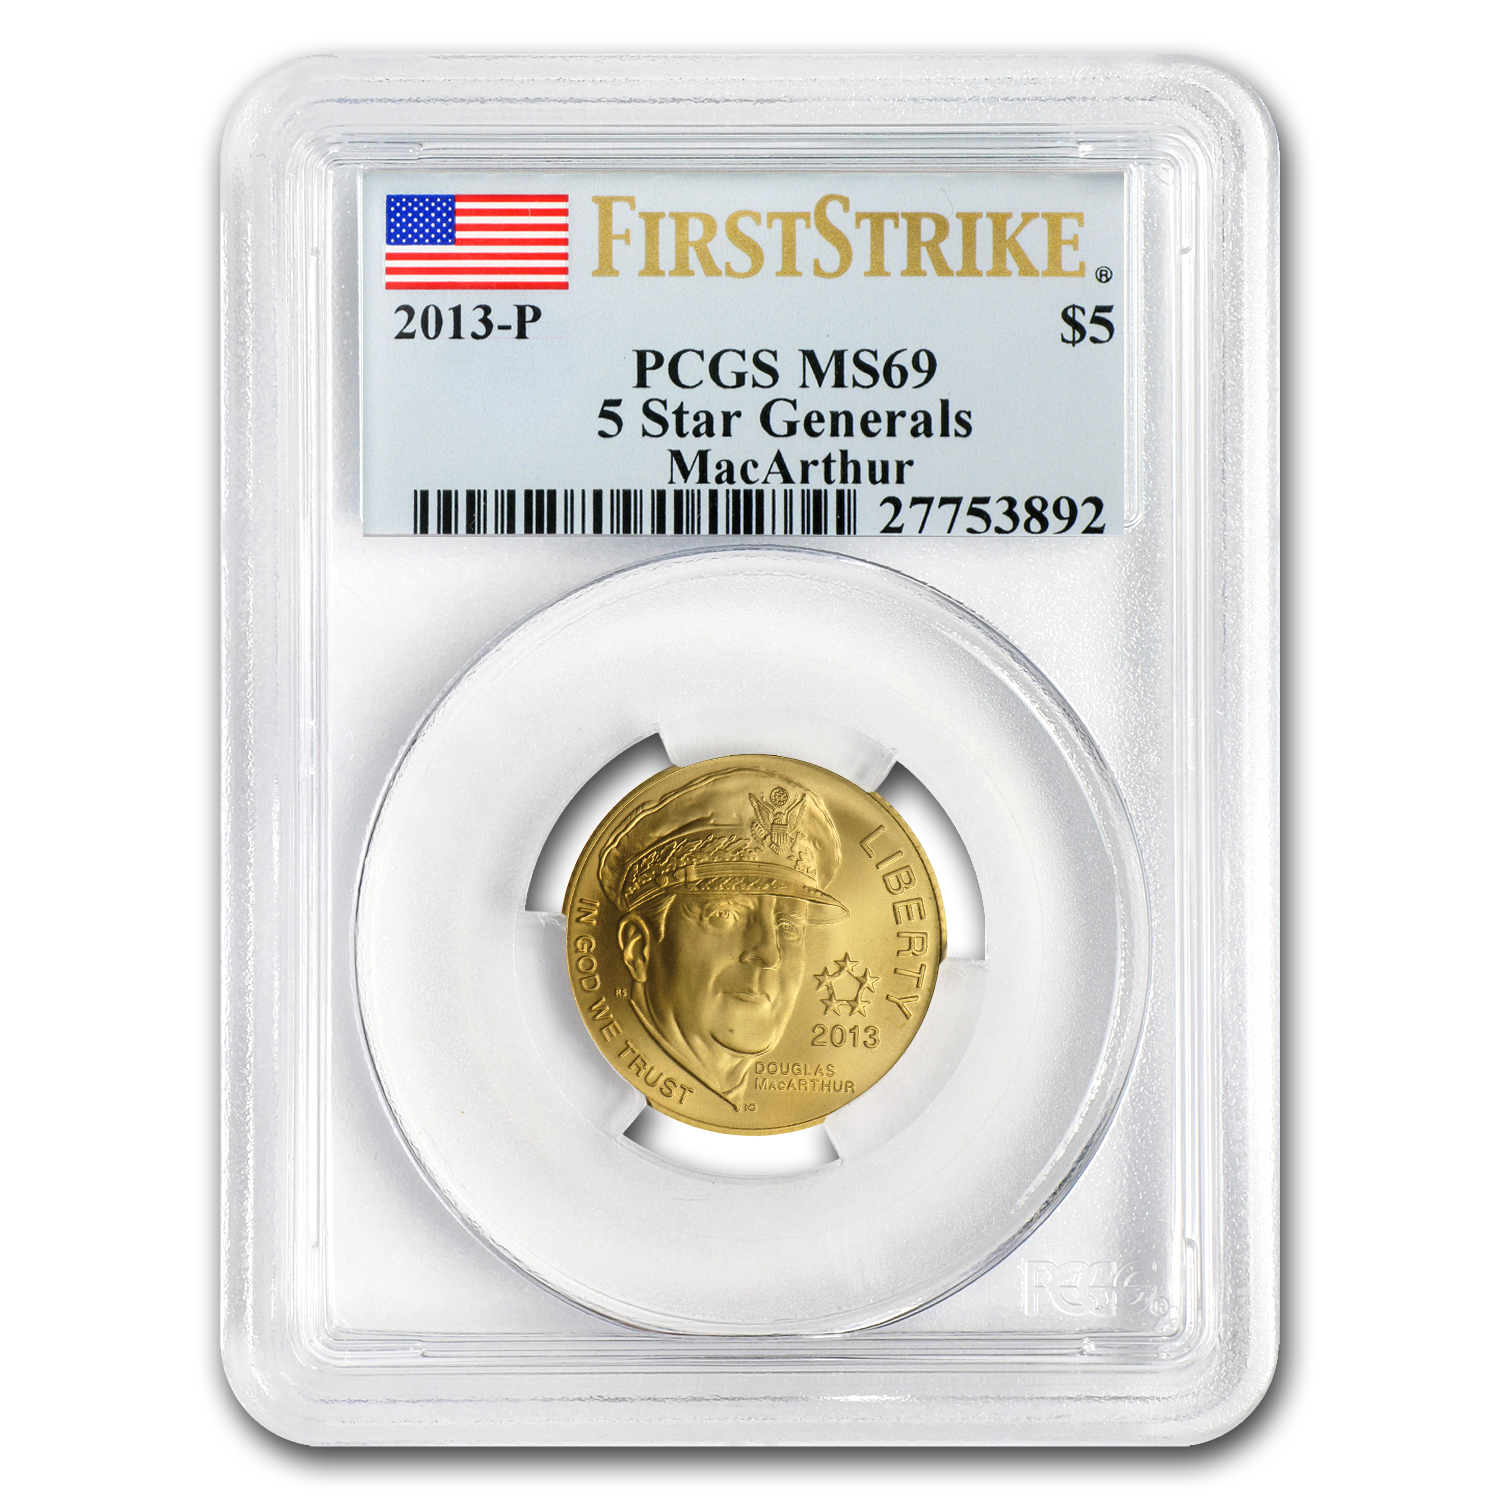 2013-P Gold $5 Commem Five Star General MS-69 PCGS (FS)